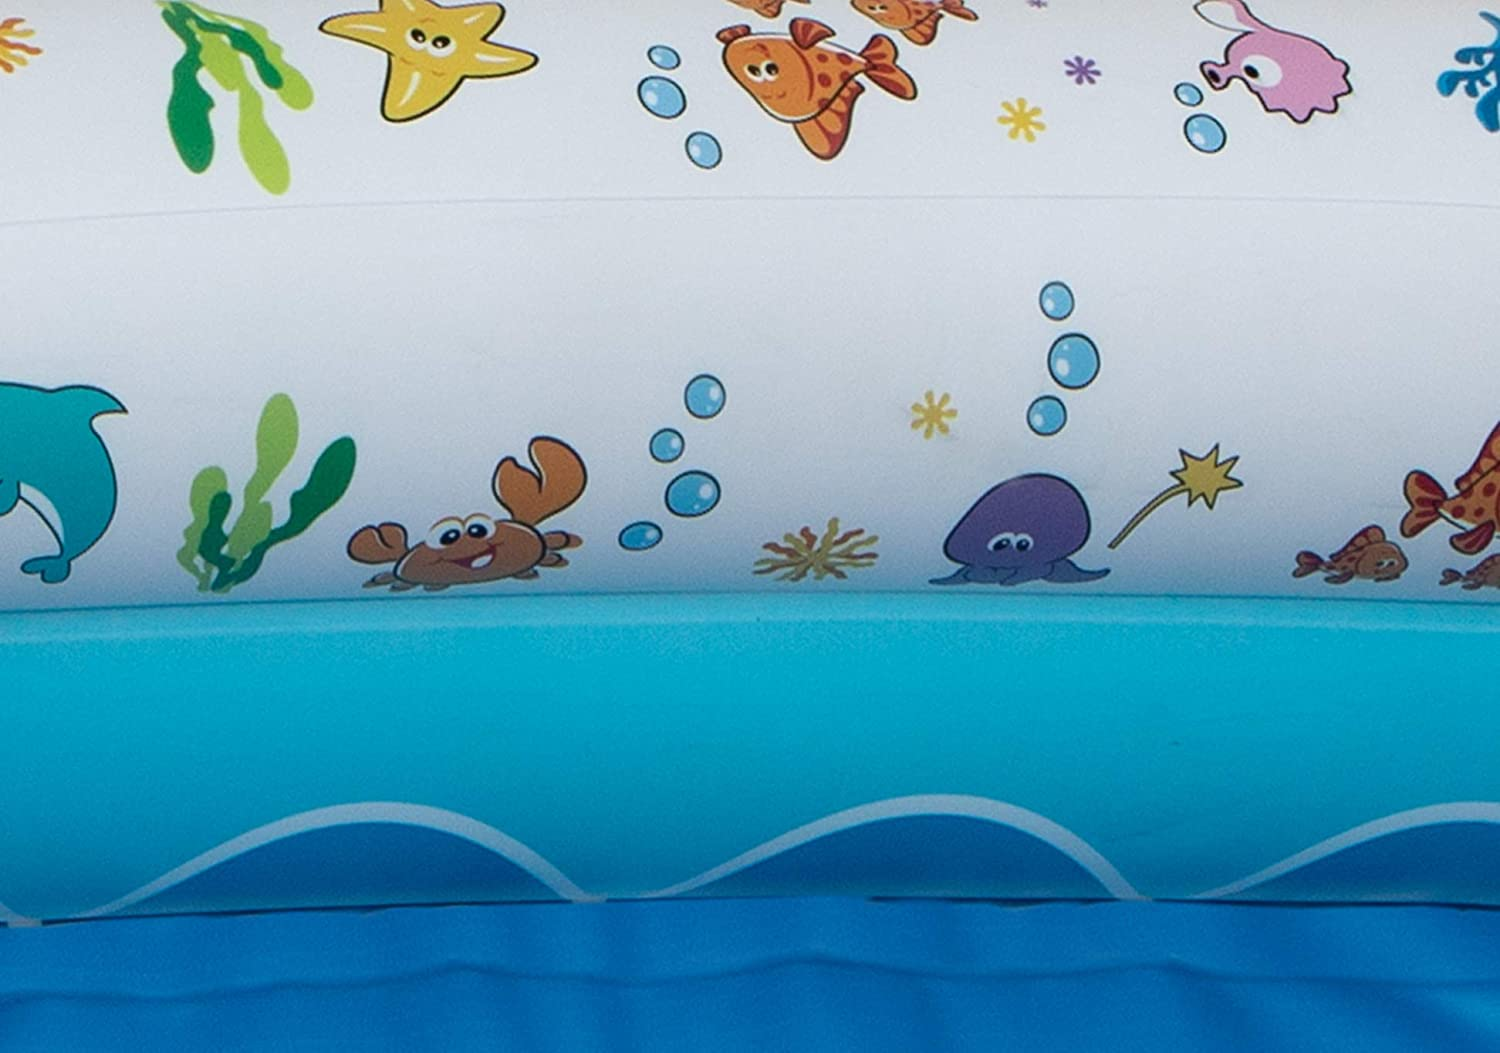 Mommys Helper Inflatable Bathtub for Baby /& Toddler; Saddle Horn Baby Bath Seat Keeps Baby from Sliding; Whimsical Ocean Design Makes Toddler Bath time Fun; Recommended Age 6 to 24 Months